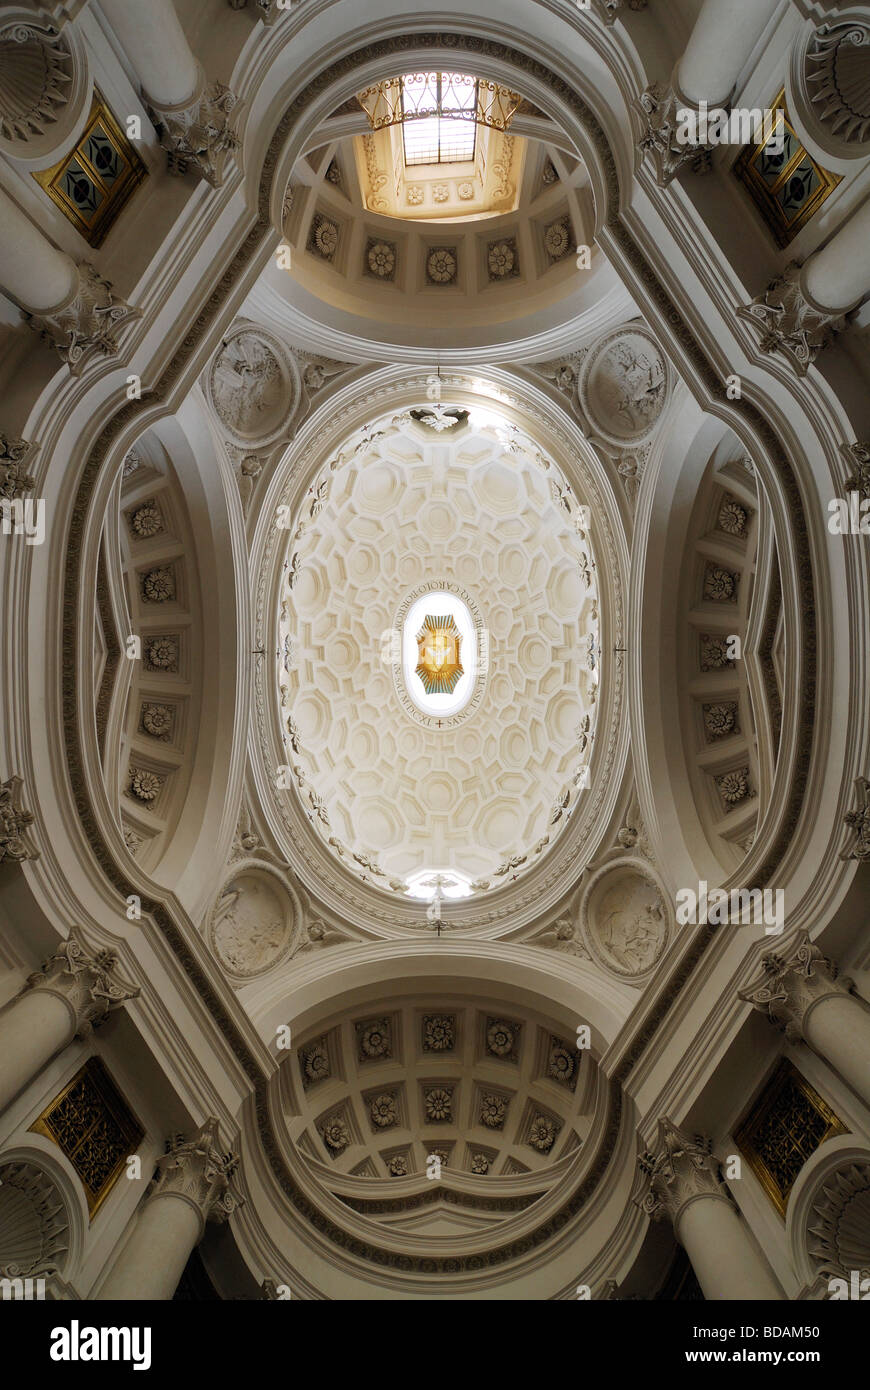 Rome Italy Ceiling of the church of San Carlo alle Quattro Fontane designed by Francesco Borromini Stock Photo